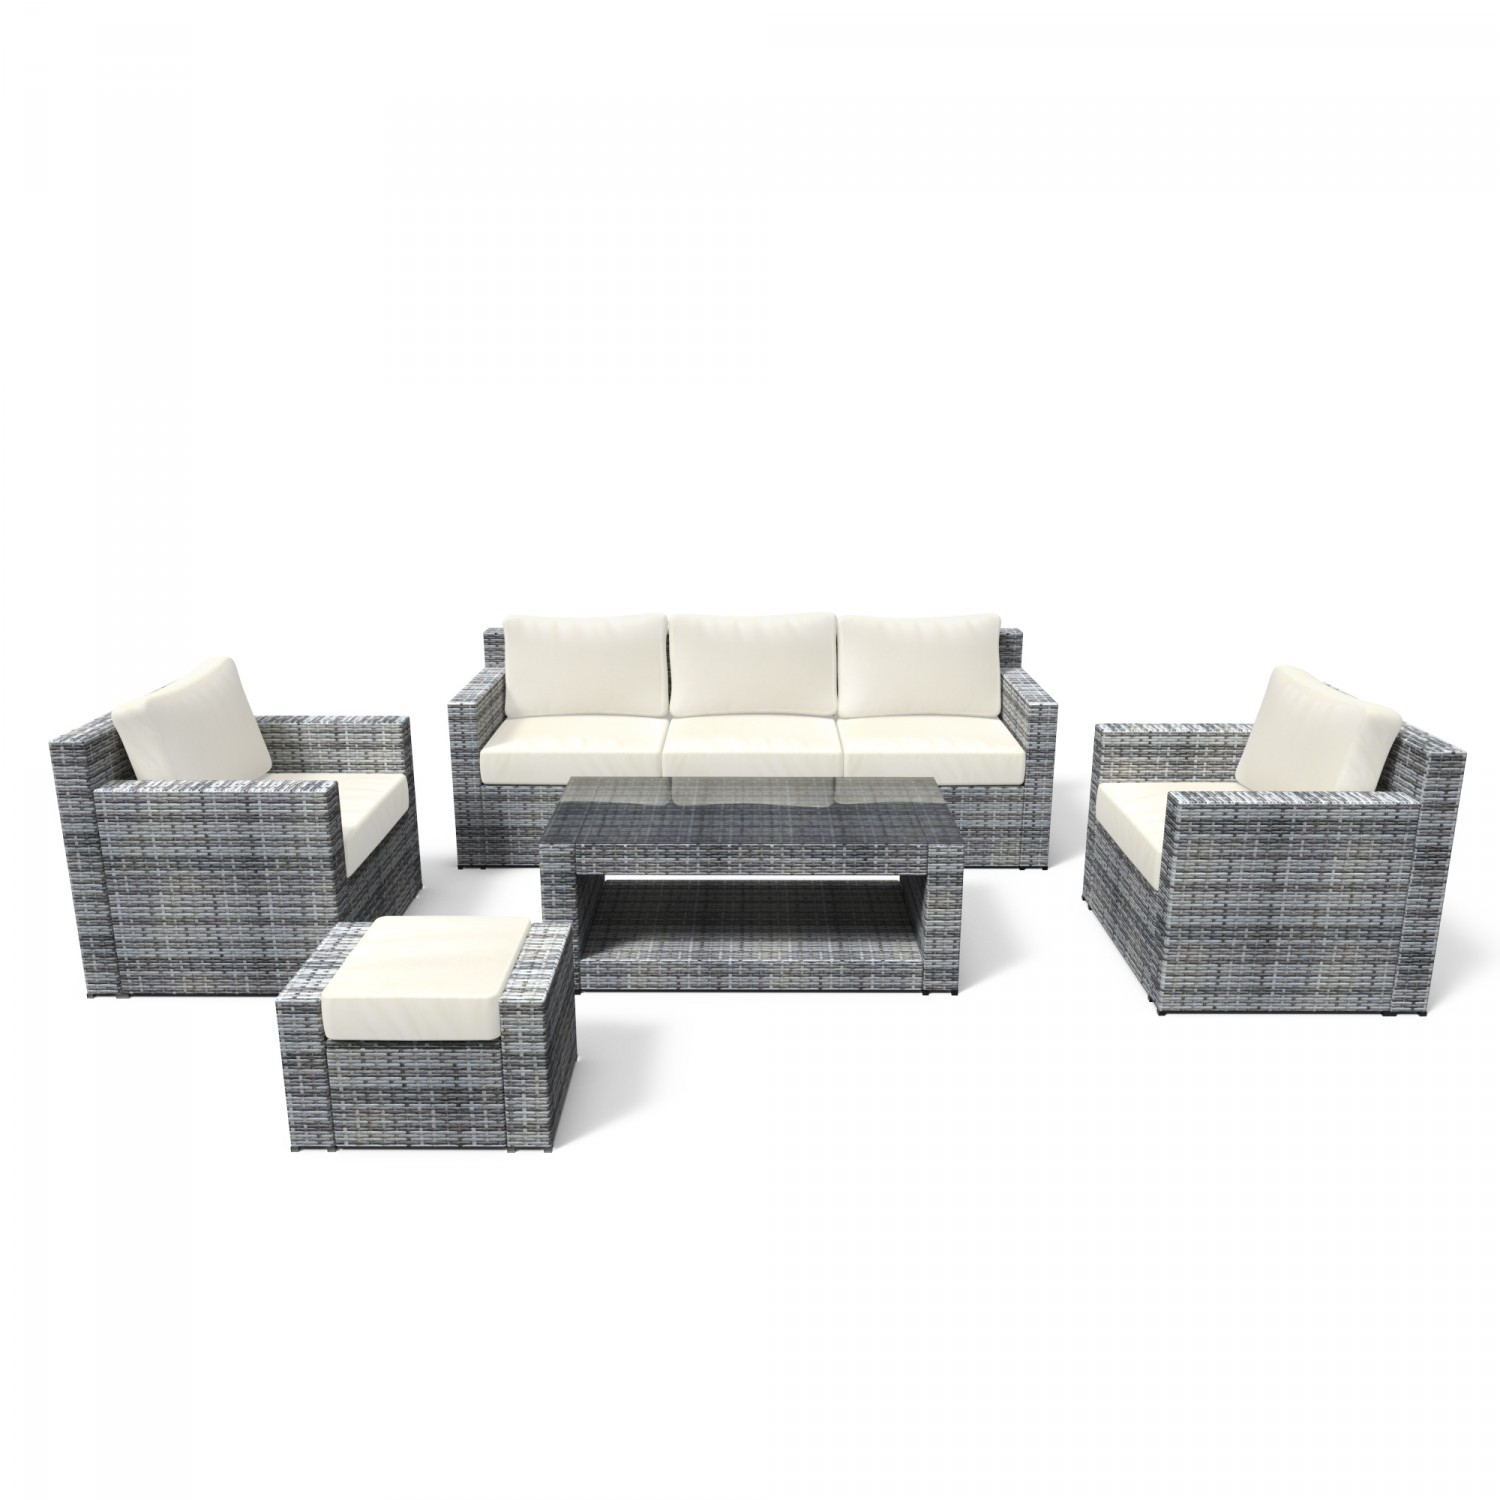 gartenm bel rattan lounge manila grau online shop gonser. Black Bedroom Furniture Sets. Home Design Ideas